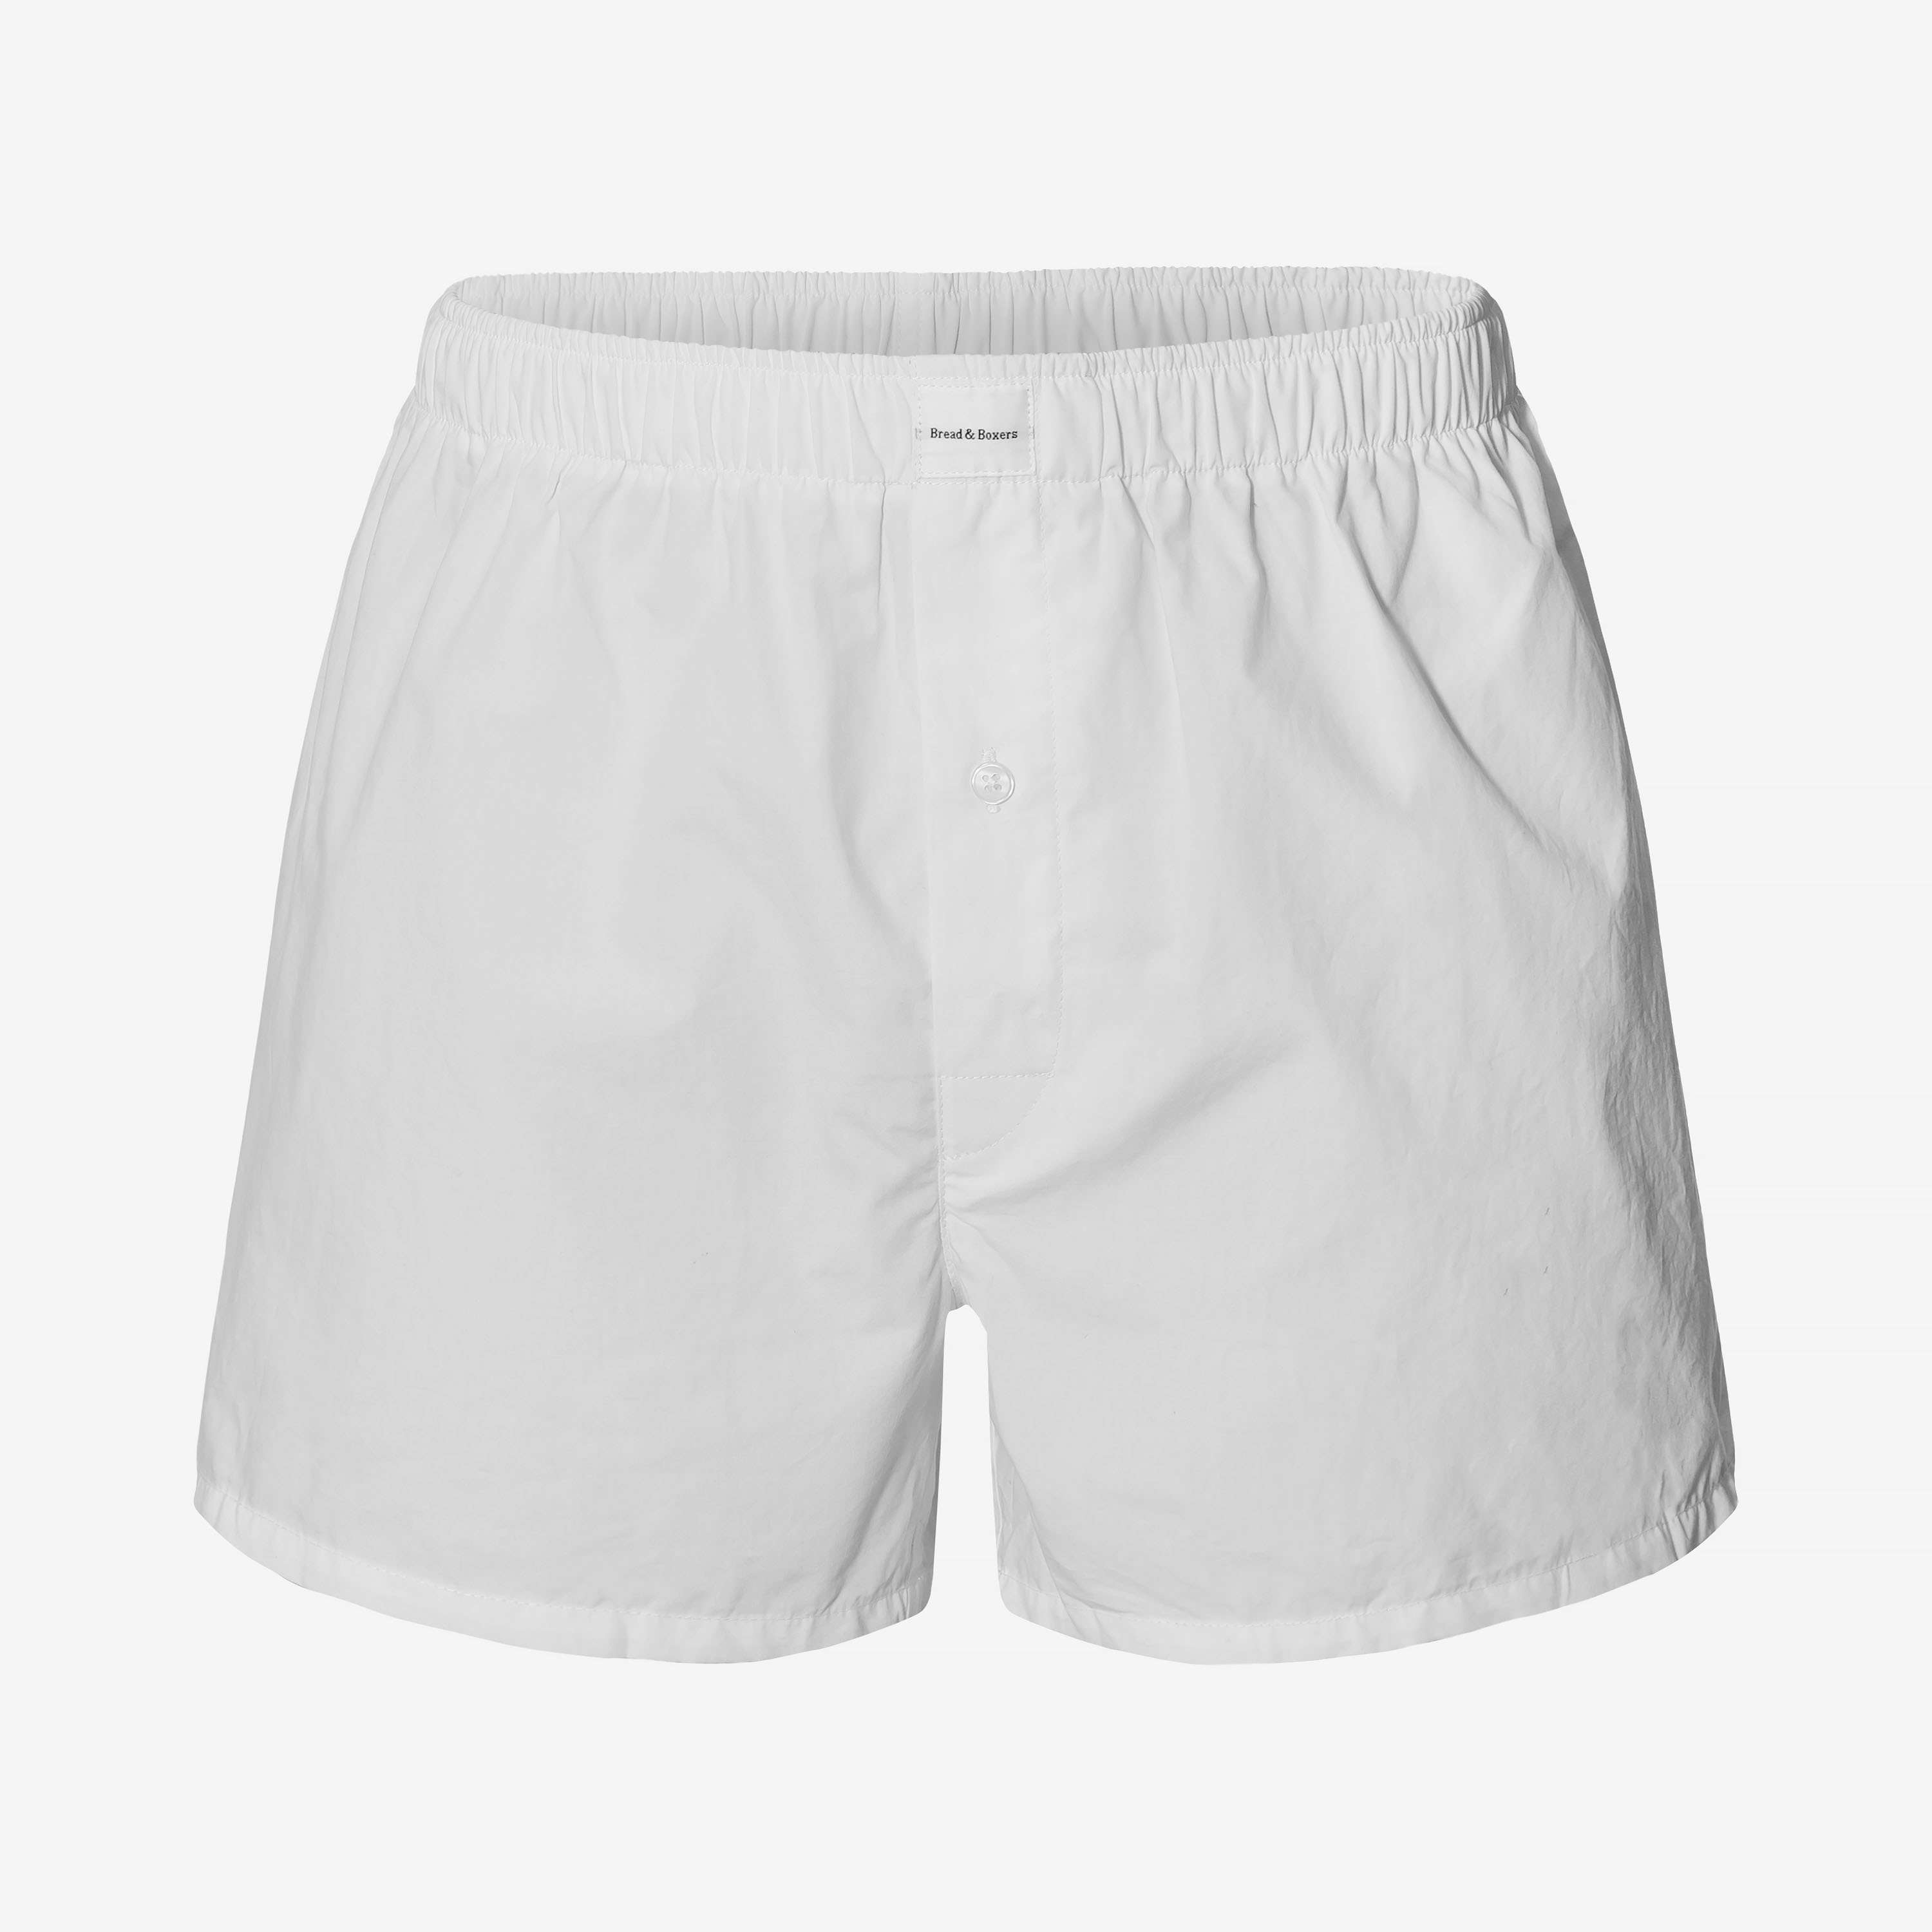 203201_Man_Boxer-Short_white_CO-A